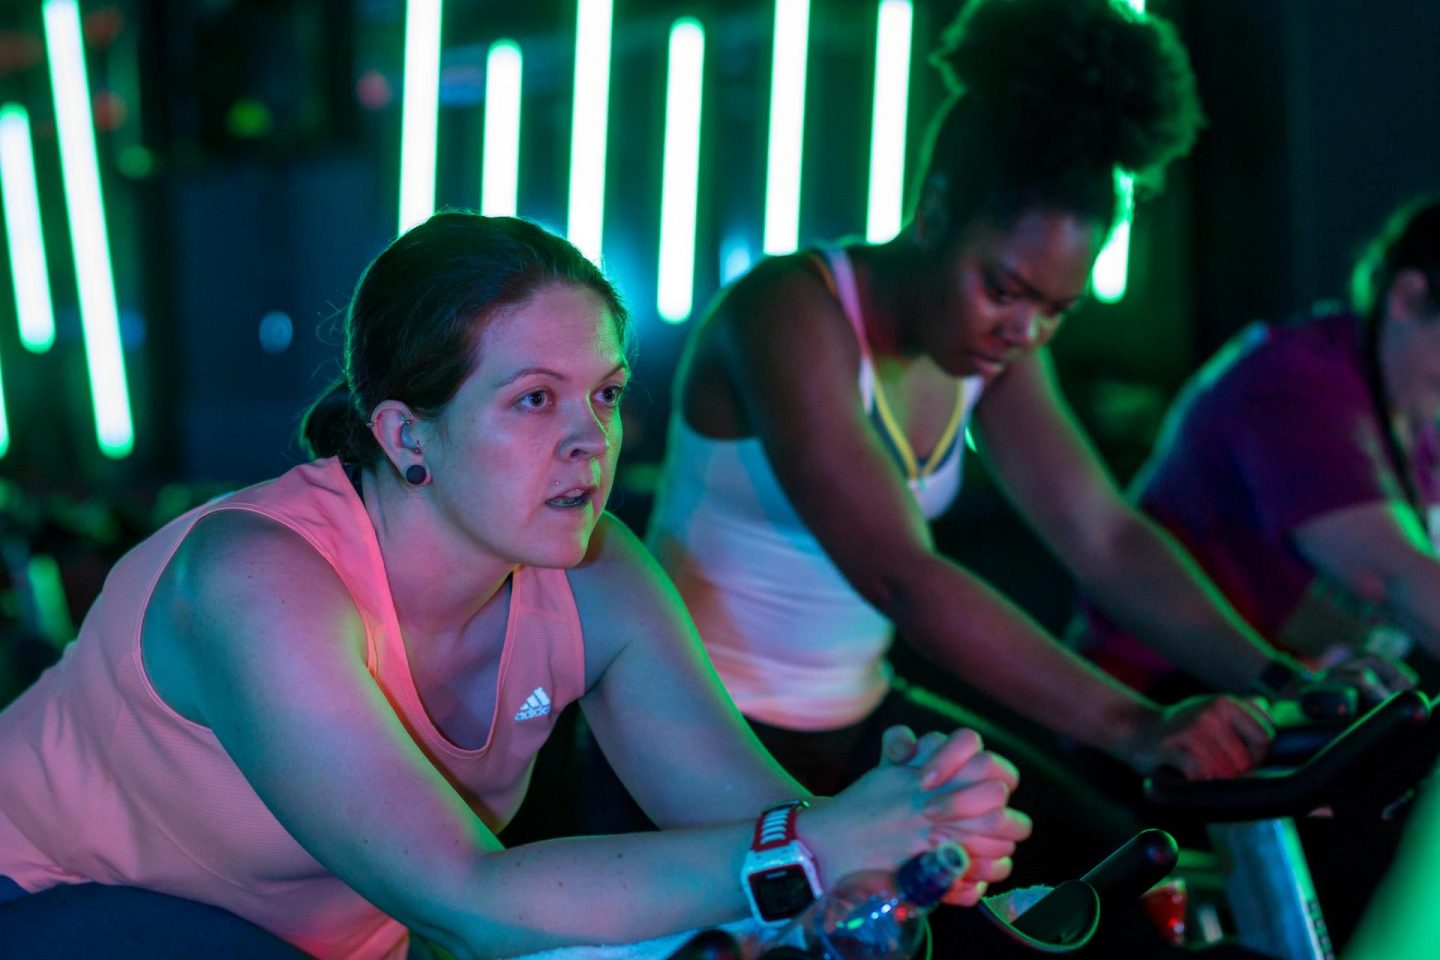 What makes a great spin class? An energetic, motivated instructor with an awesome playlist and high-spec bikes